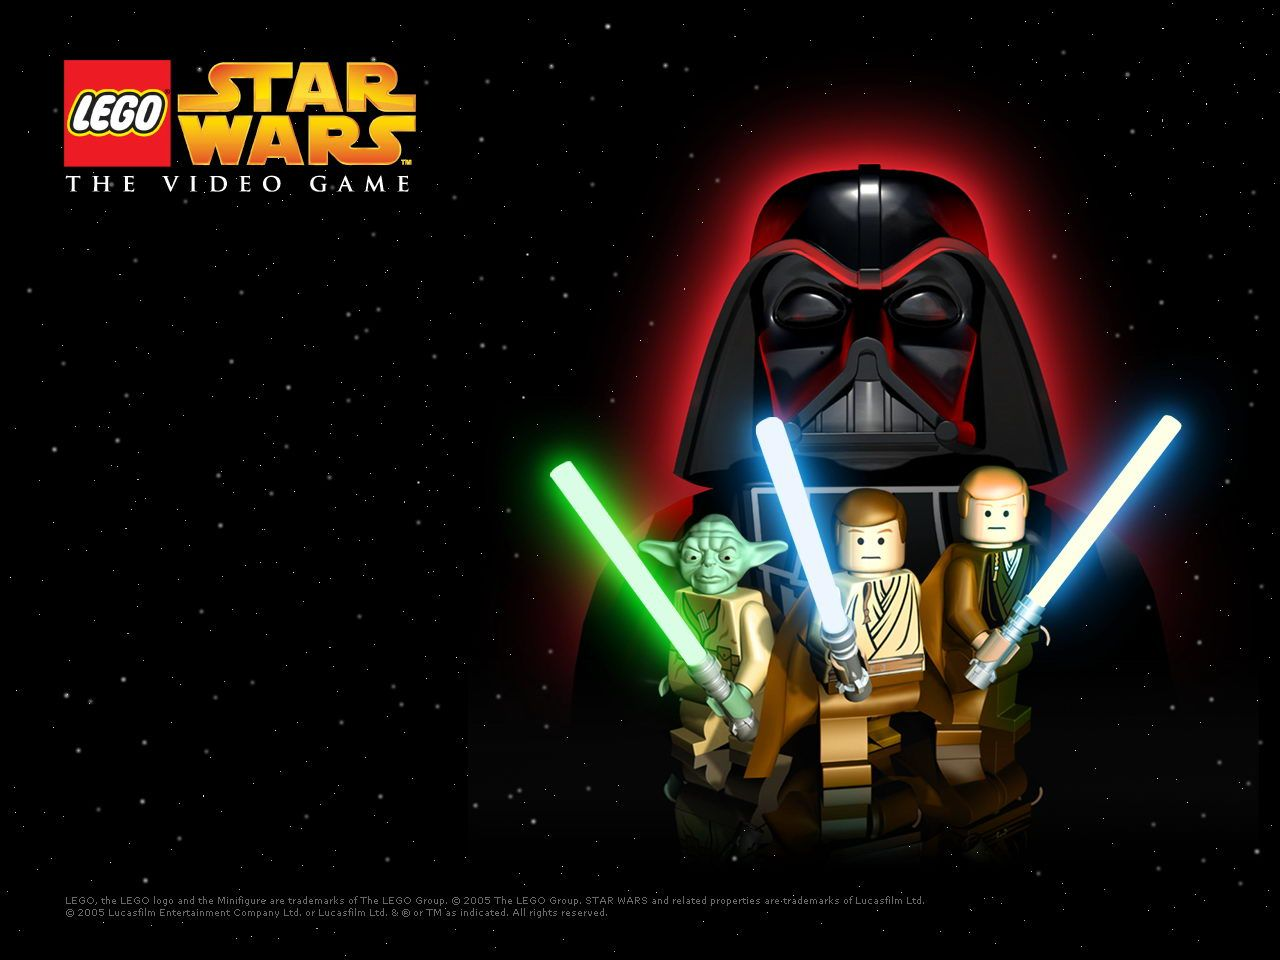 Star Wars | Fondos de pantalla de LEGO Star Wars | Wallpapers de LEGO Star Wars ...